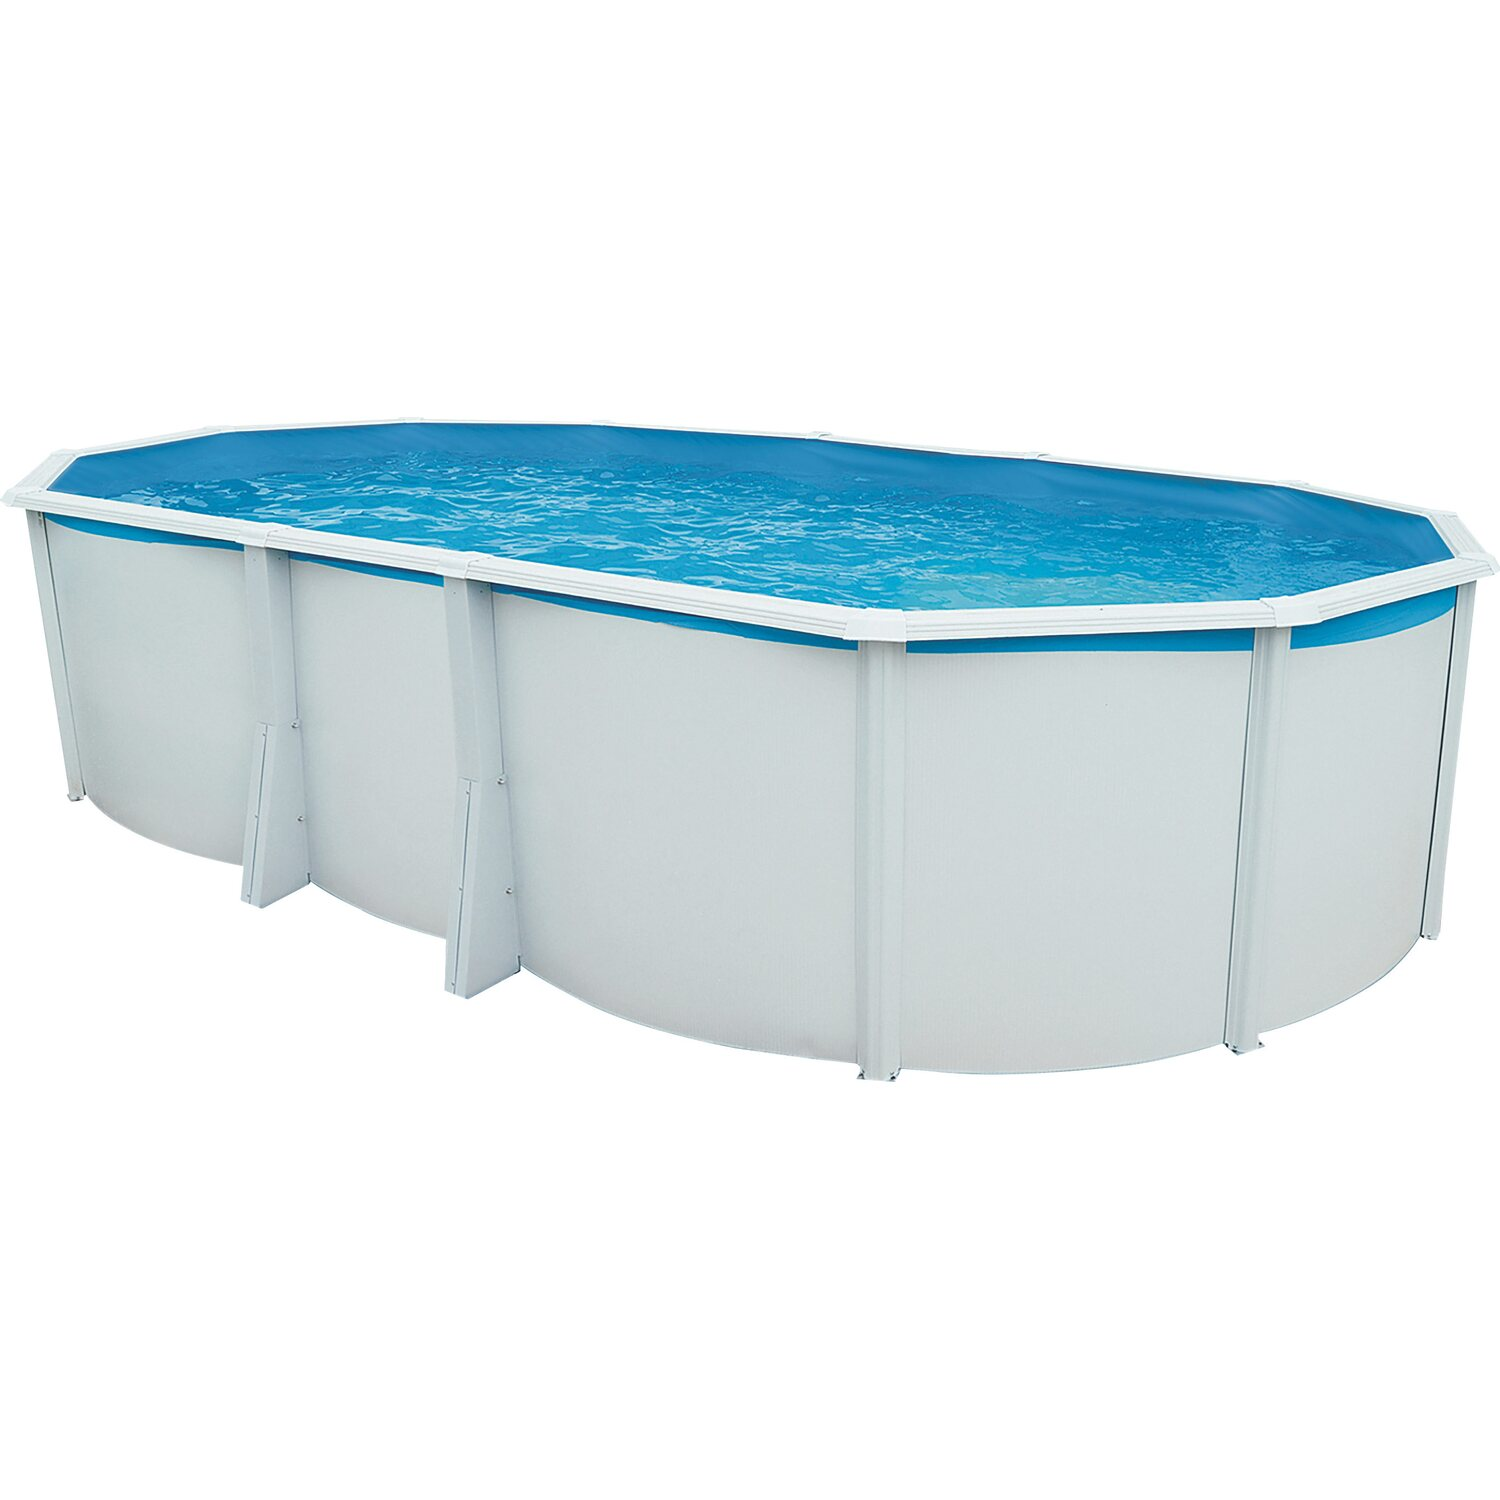 Steinbach stahlwand pool set highline 640 cm x 366 cm x for Ovaler pool zum aufstellen